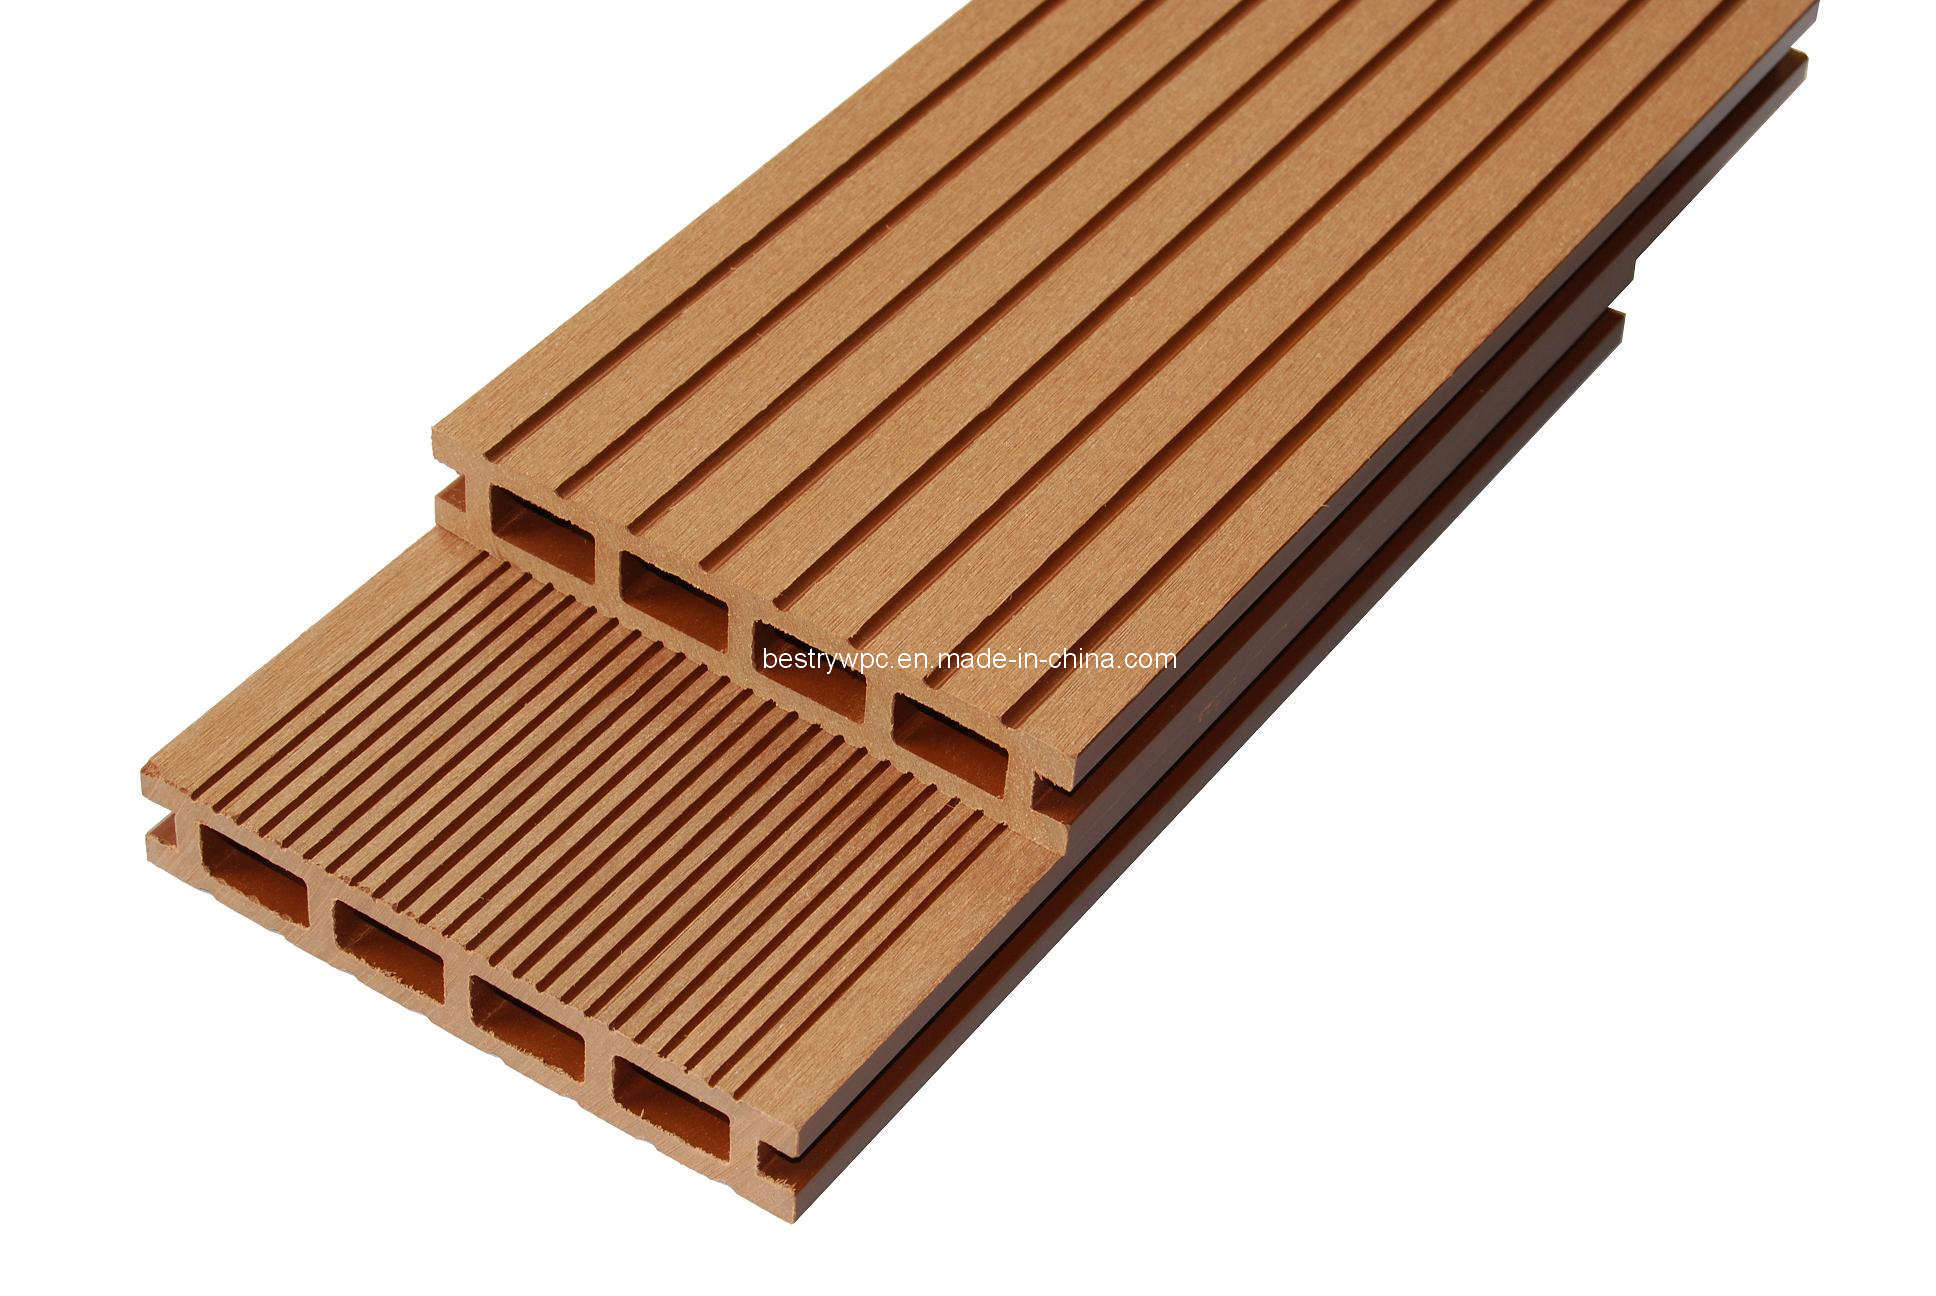 China wood plastic composite floorwpc decking bd140h25b for Plastic composite decking